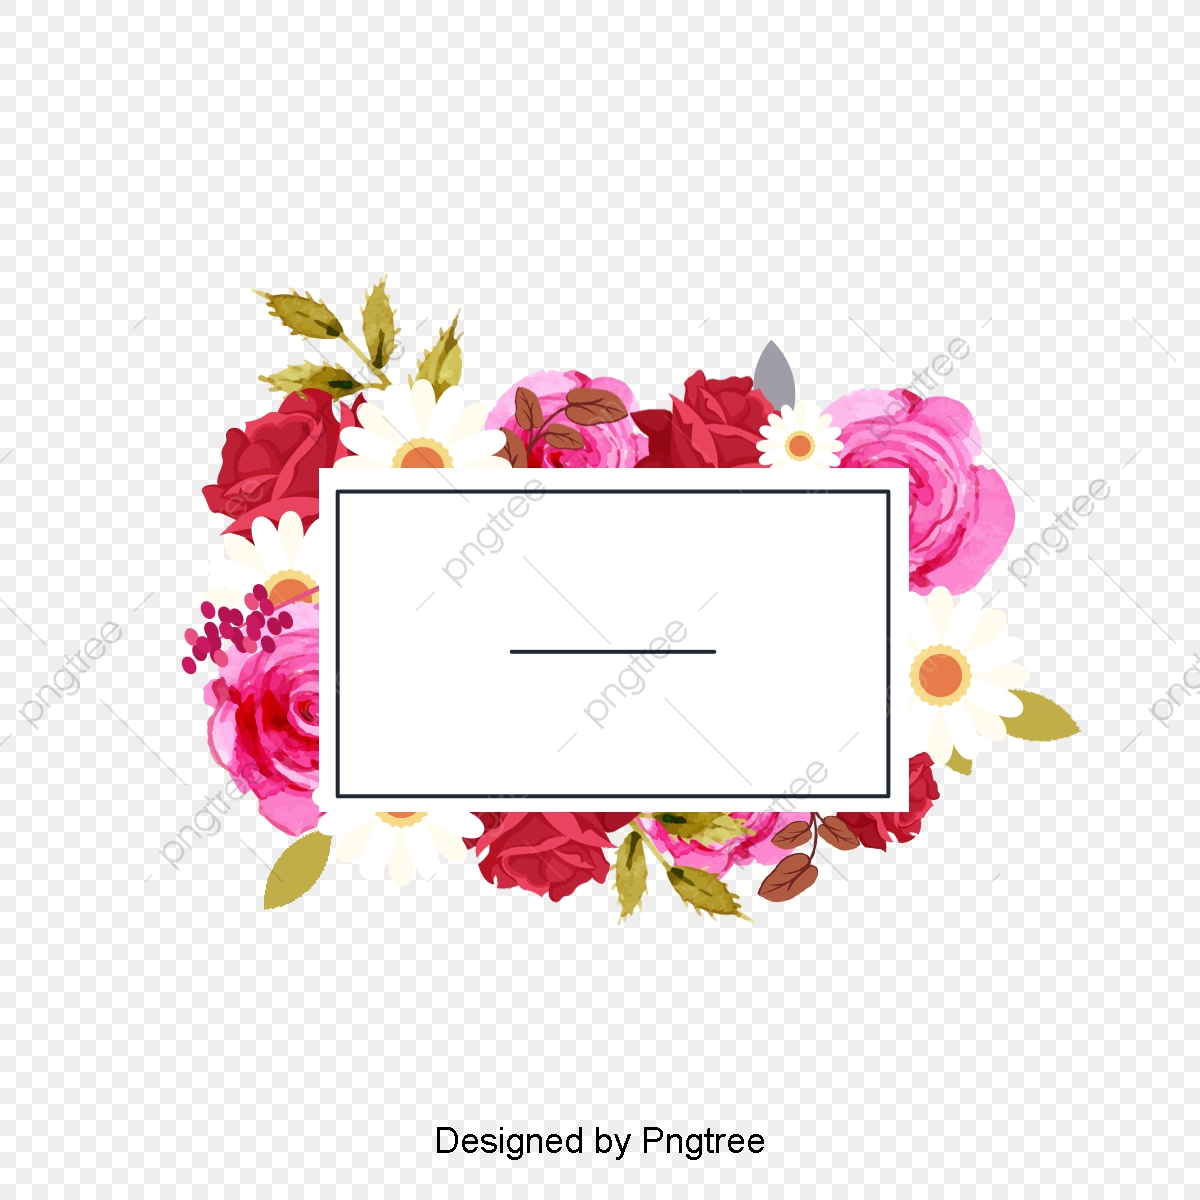 Flower Frame, Flower, Frame PNG Transparent Clipart Image and PSD.